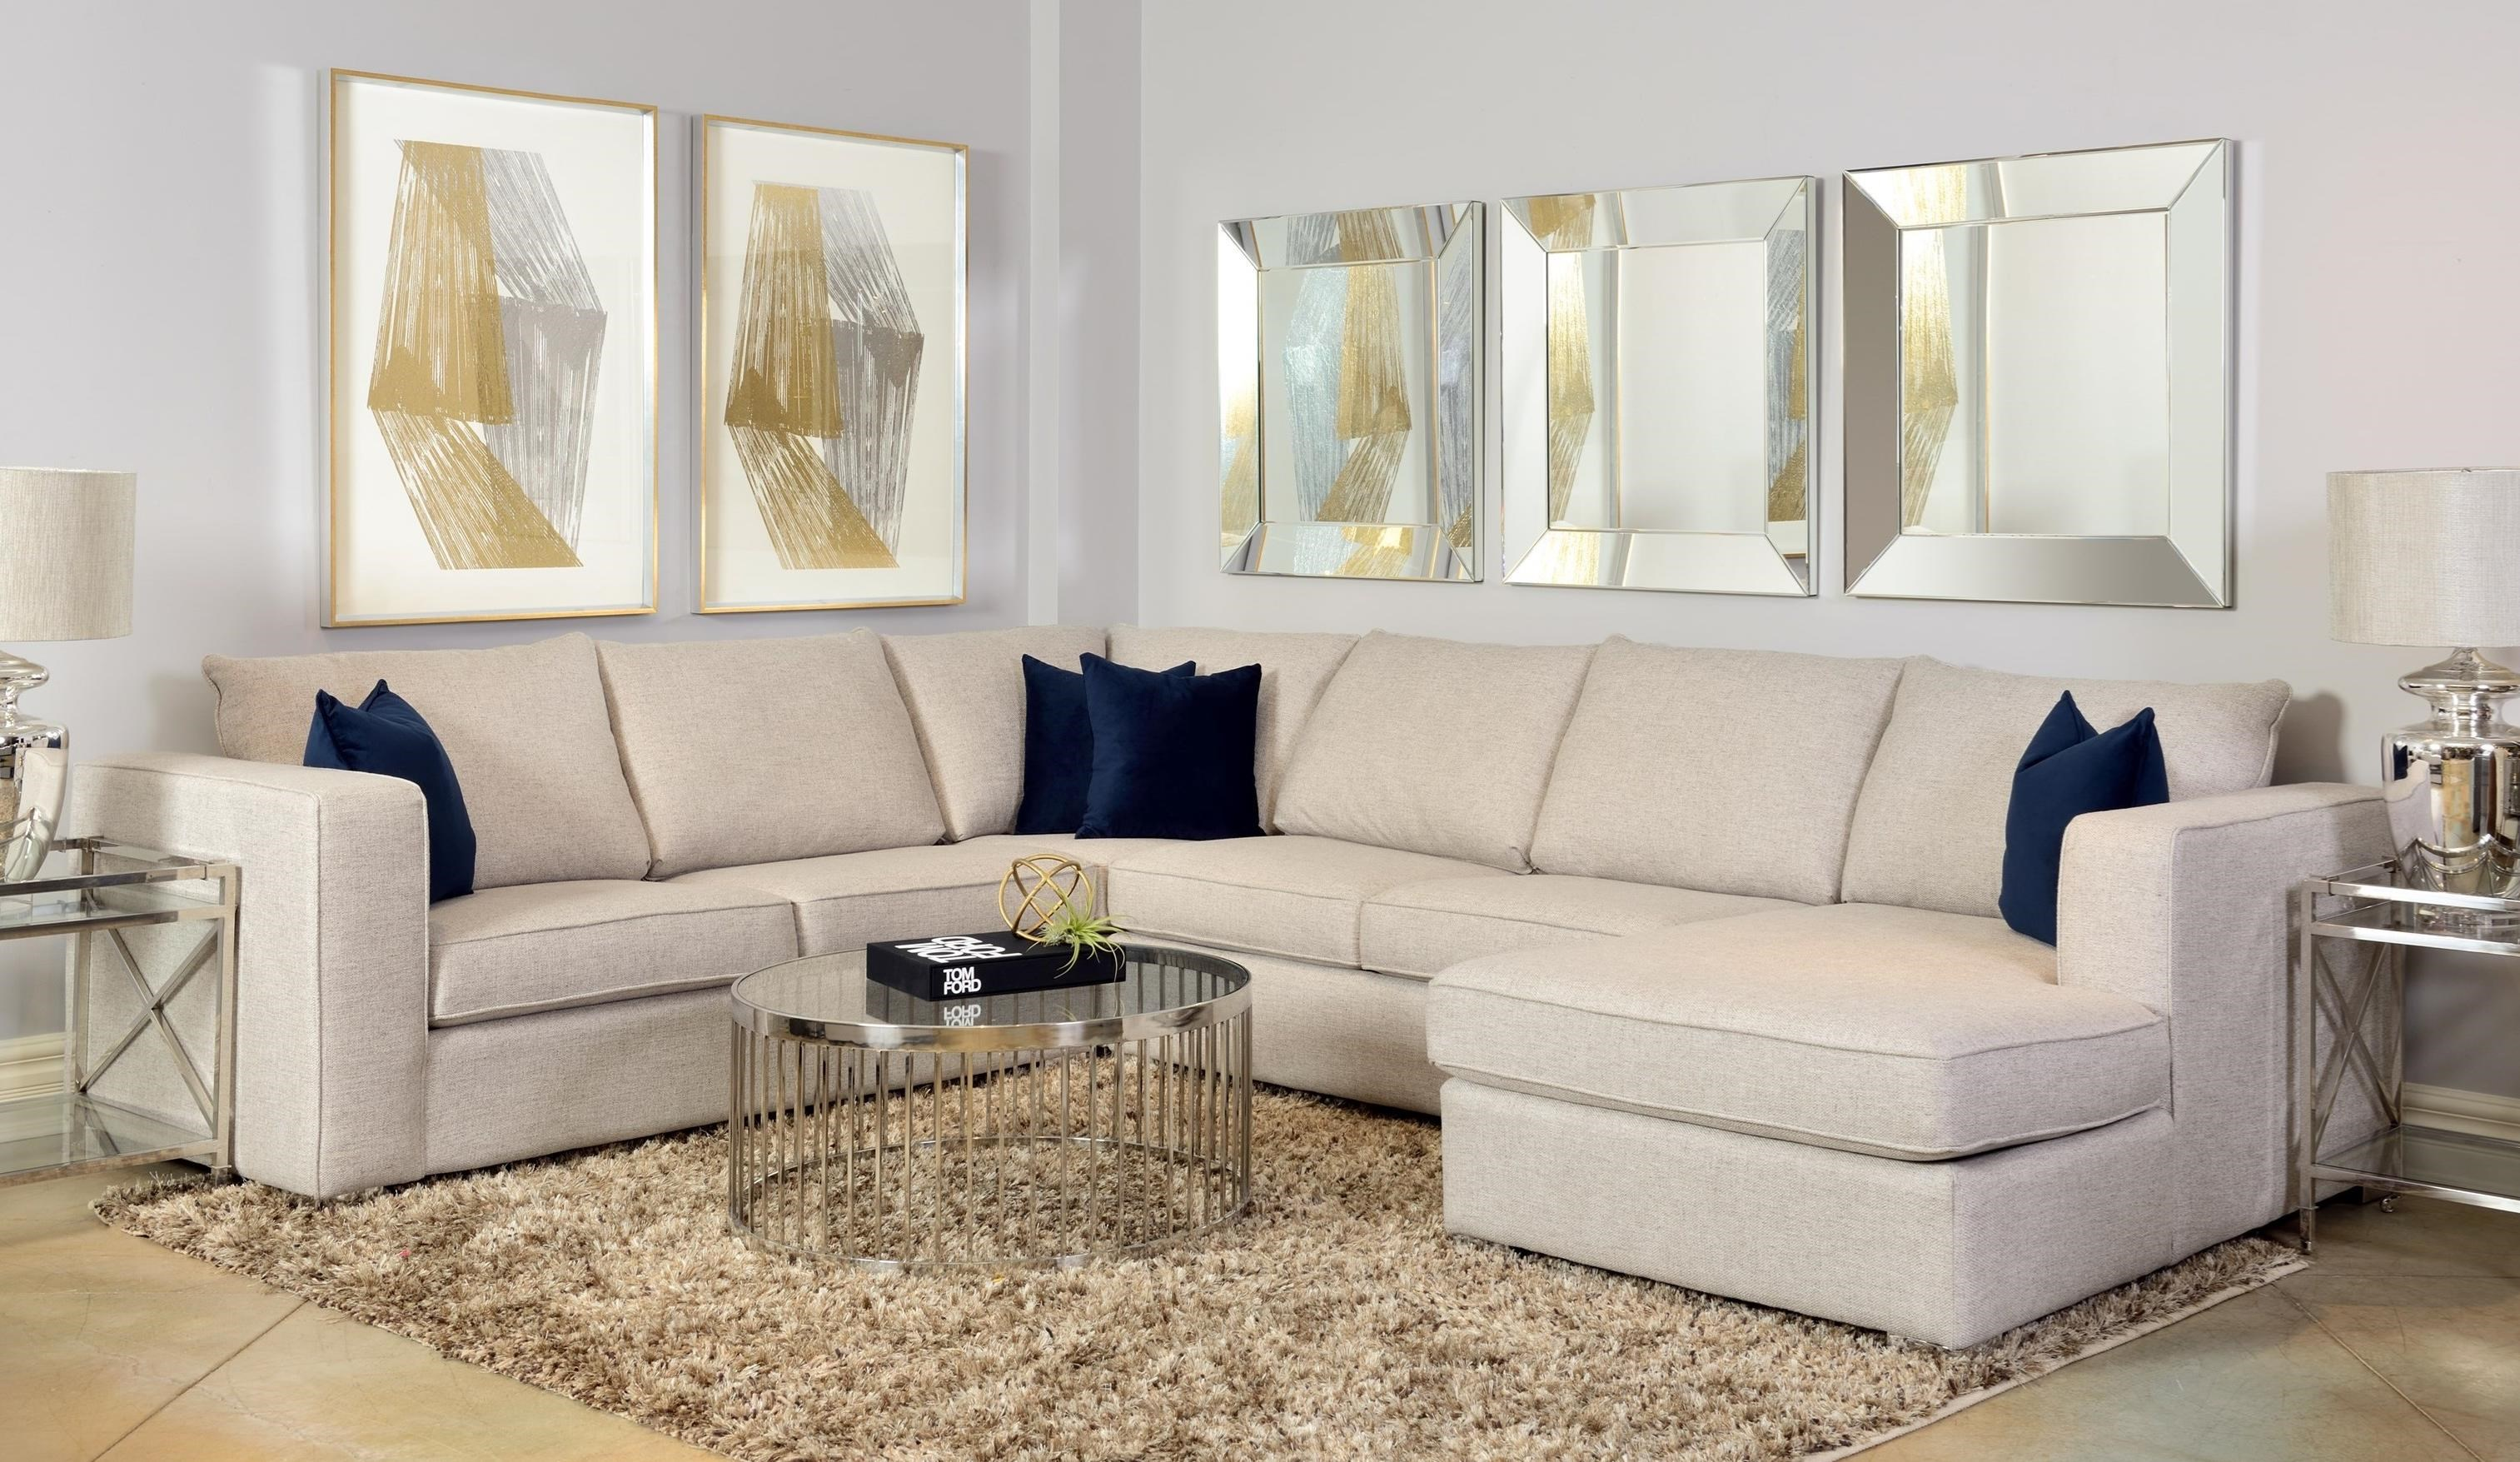 2900 Sectional by Decor-Rest at Upper Room Home Furnishings